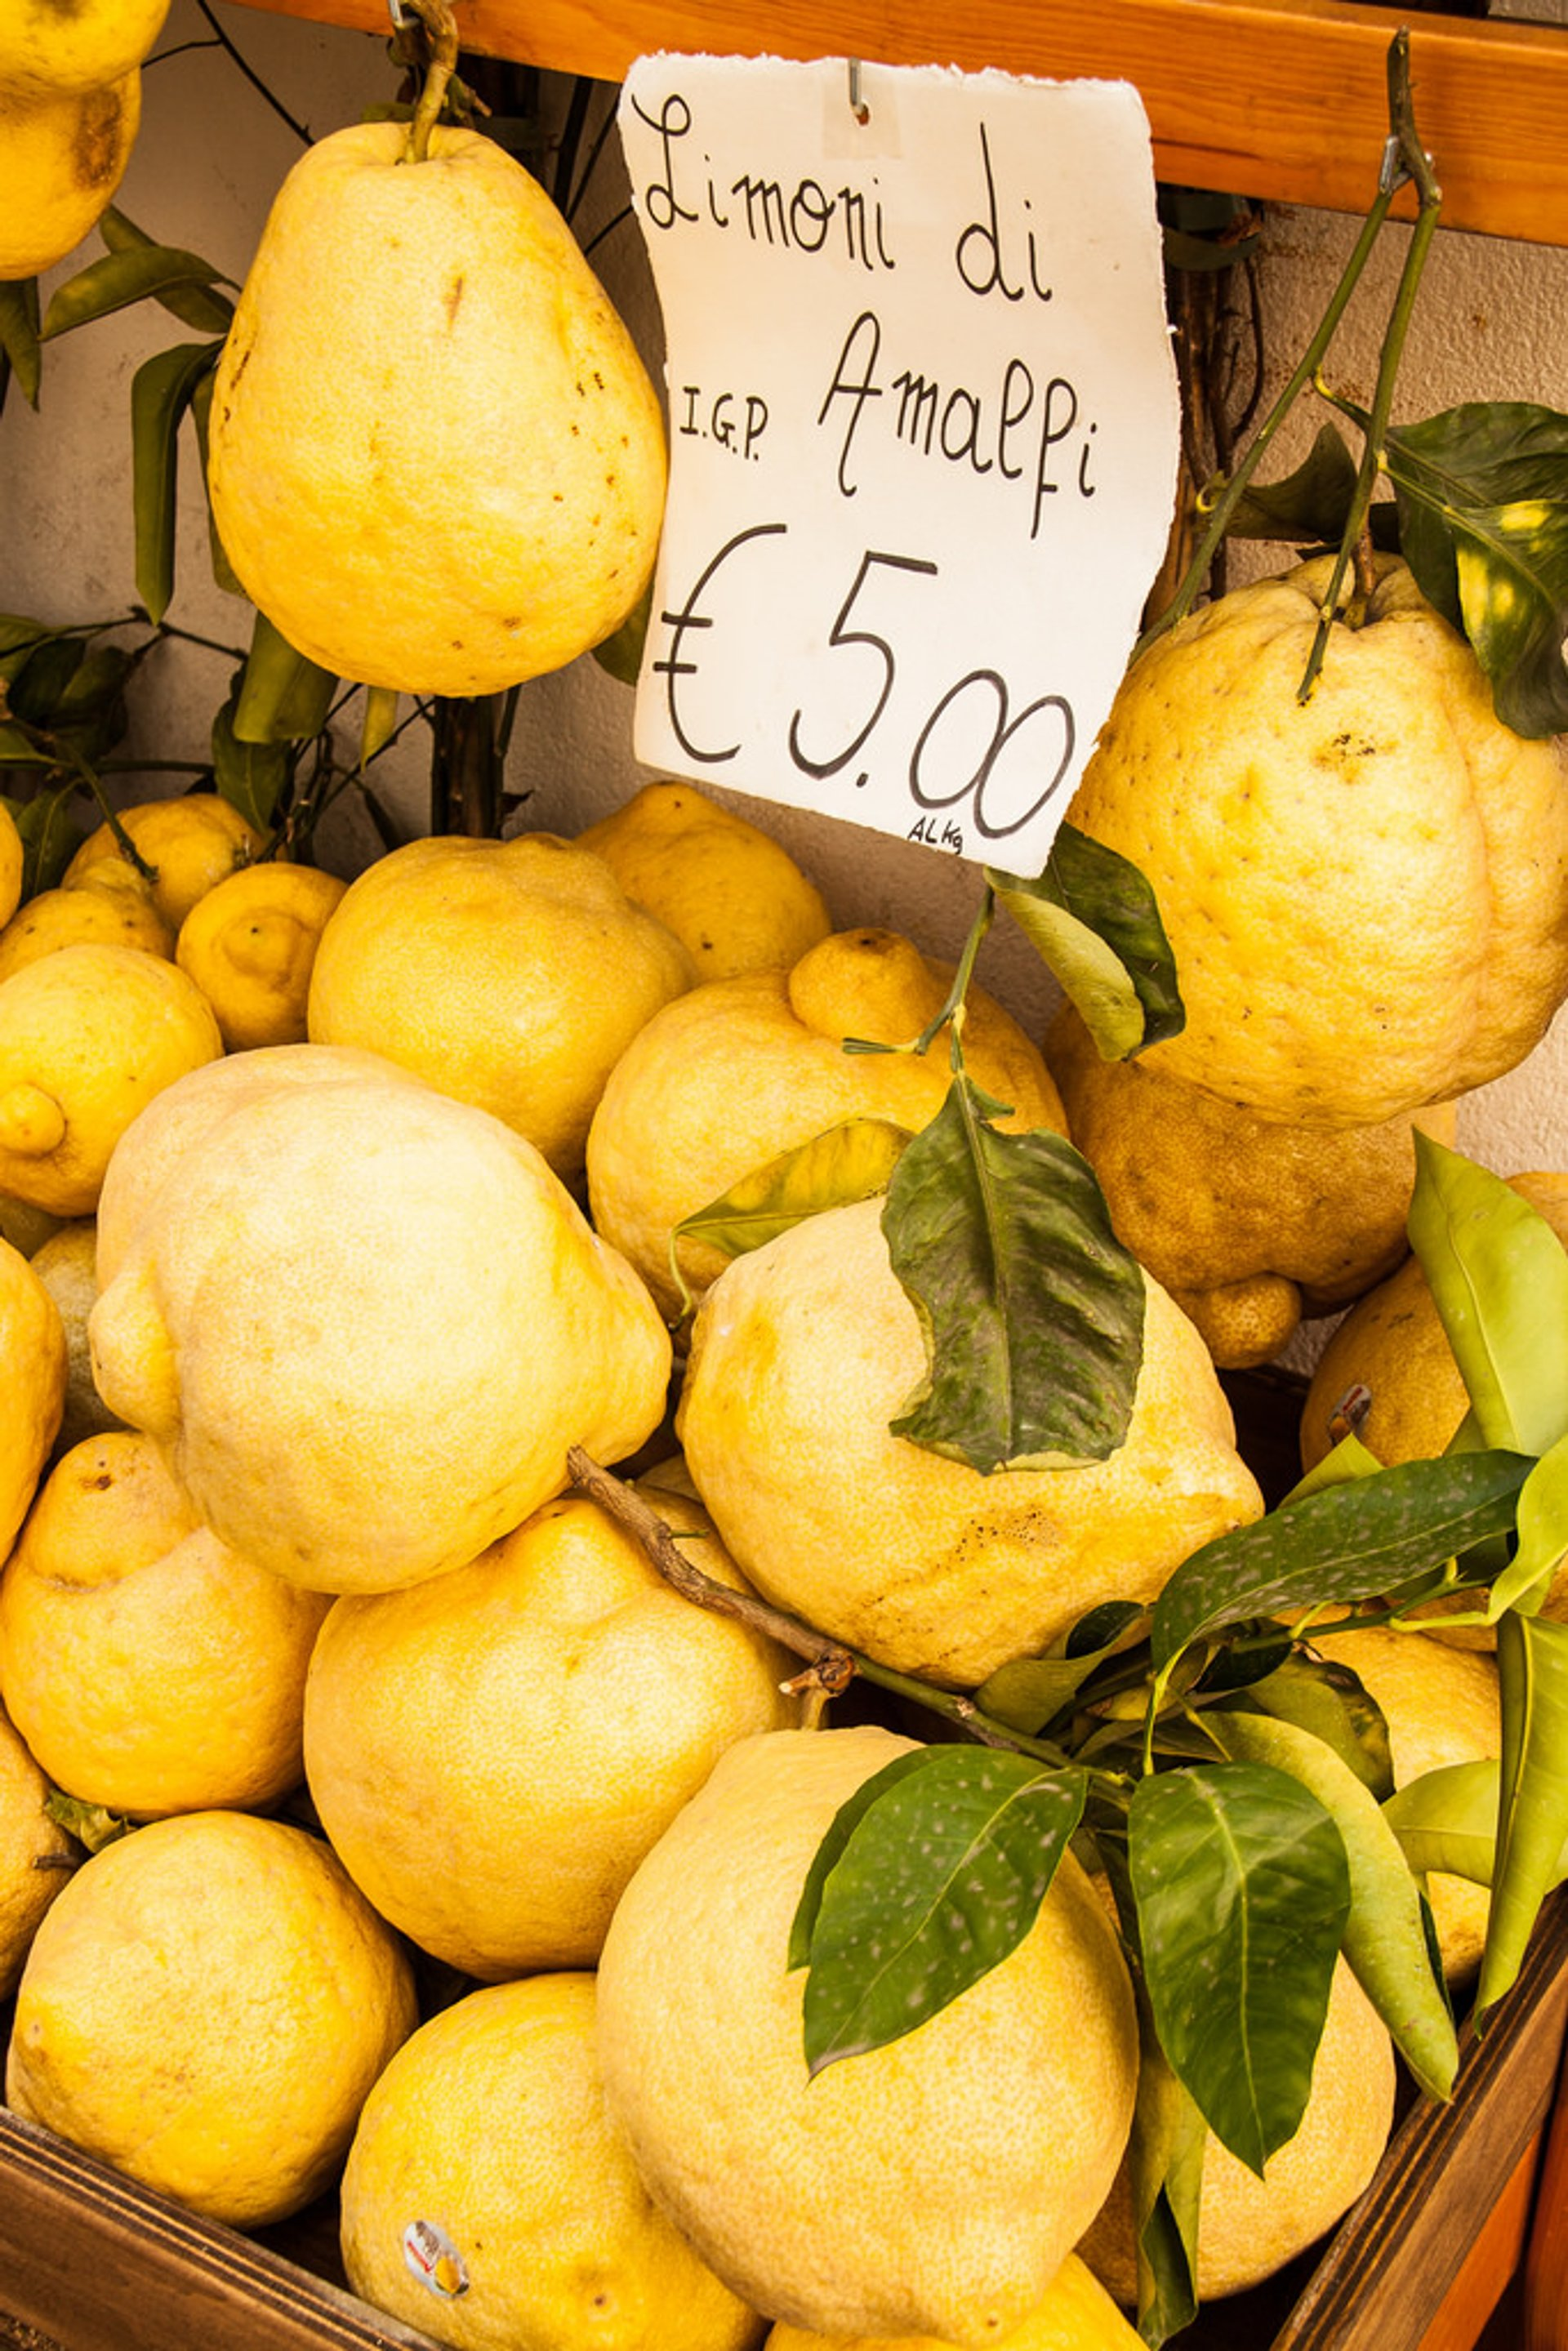 Lemons in Amalfi Coast 2019 - Best Time